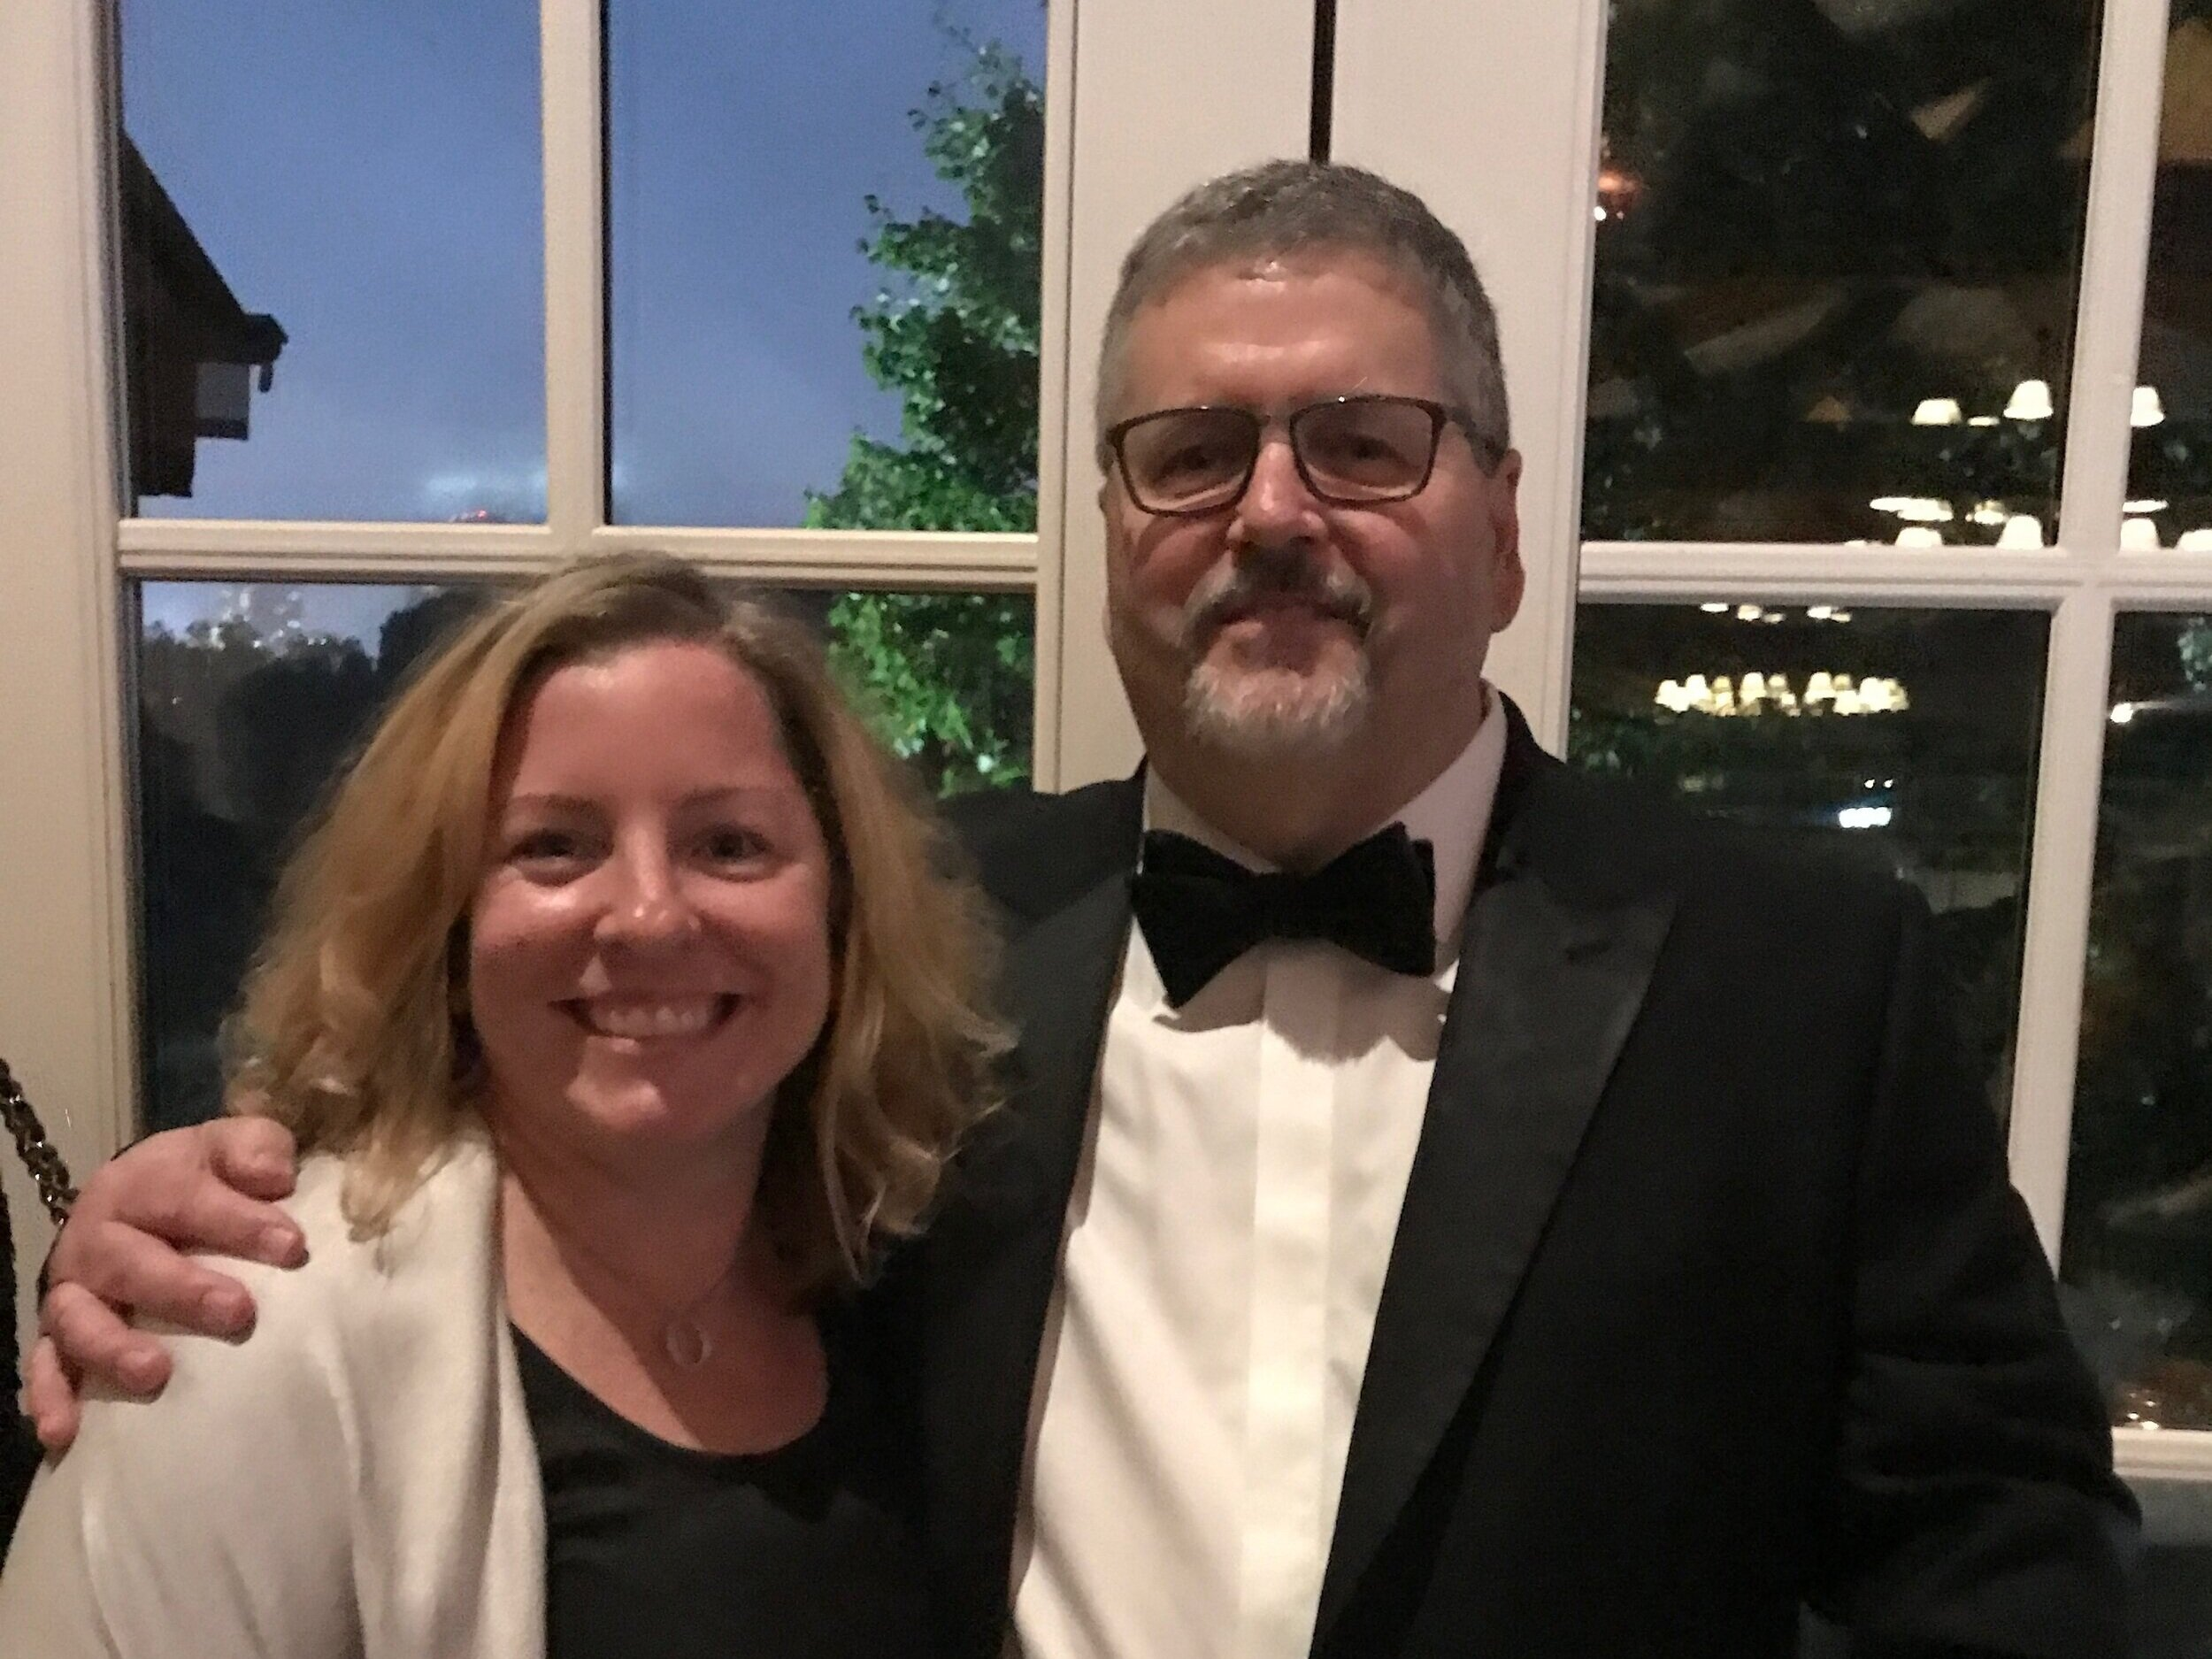 Executive Director Lisa Volle with Dave Machado at the Arts + Business Awards Gala last night in NYC.